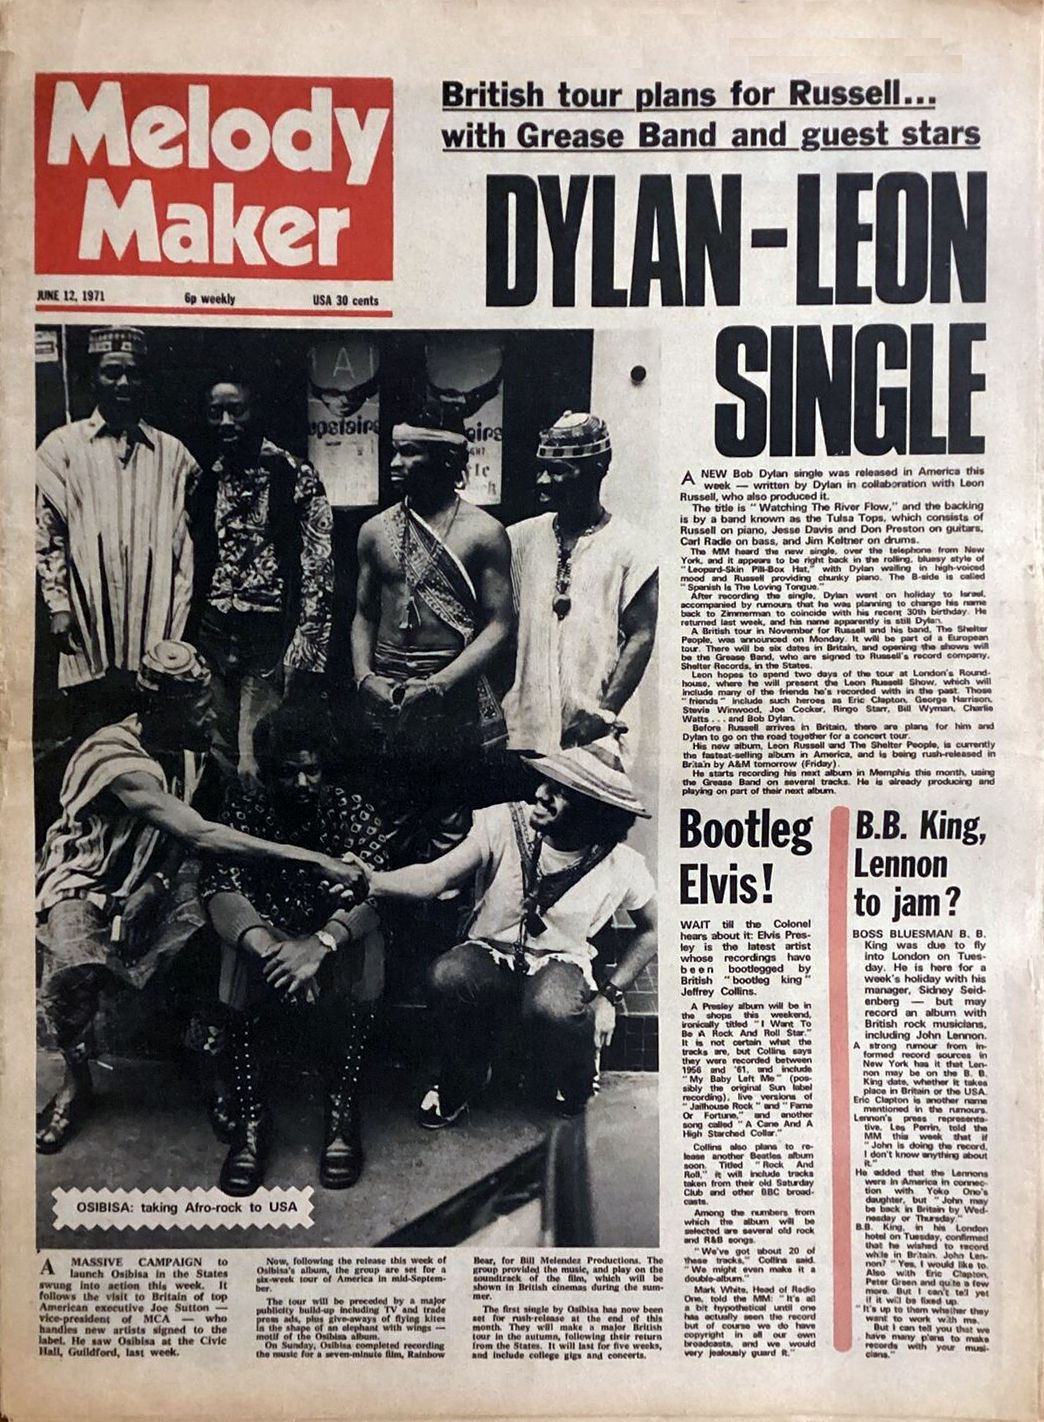 Melody Maker Bob Dylan cover story 10 June 1971